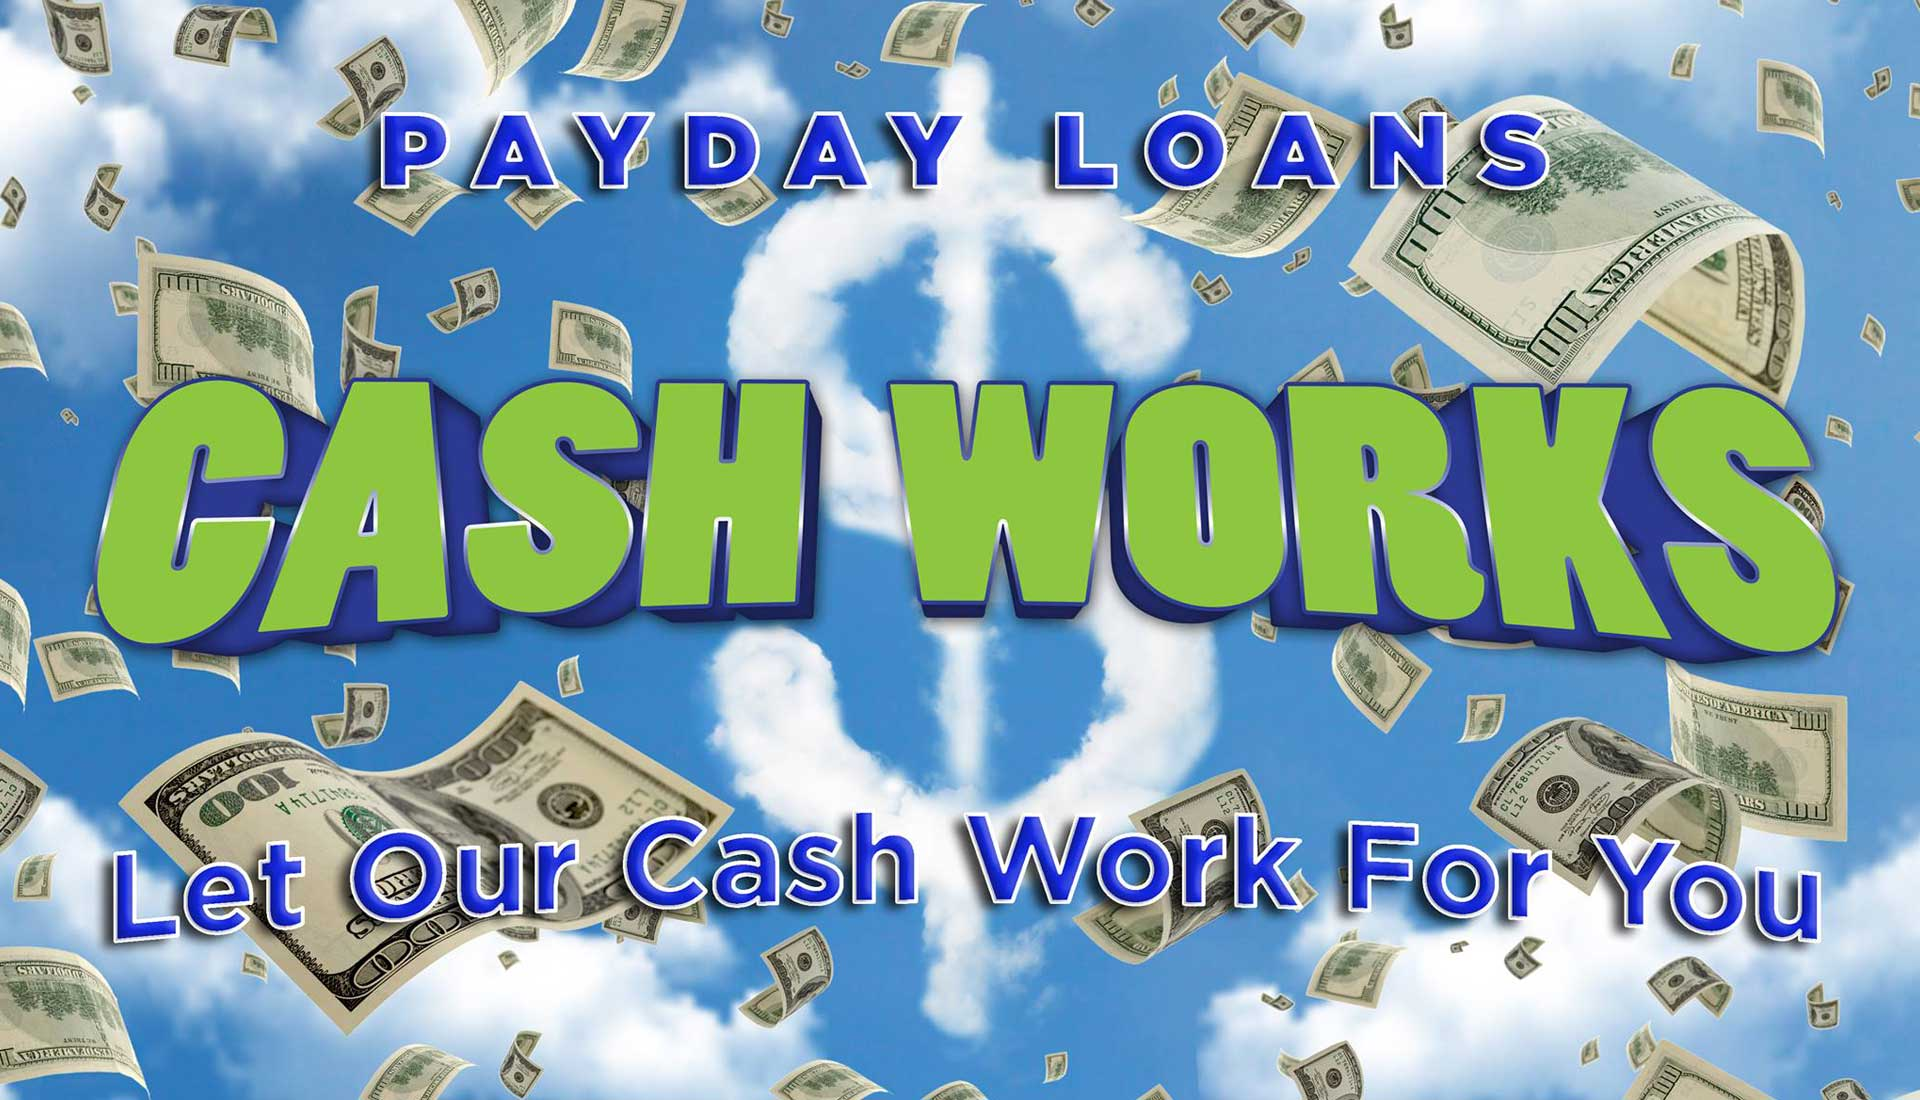 payday loans texarkana tx and atlanta tx